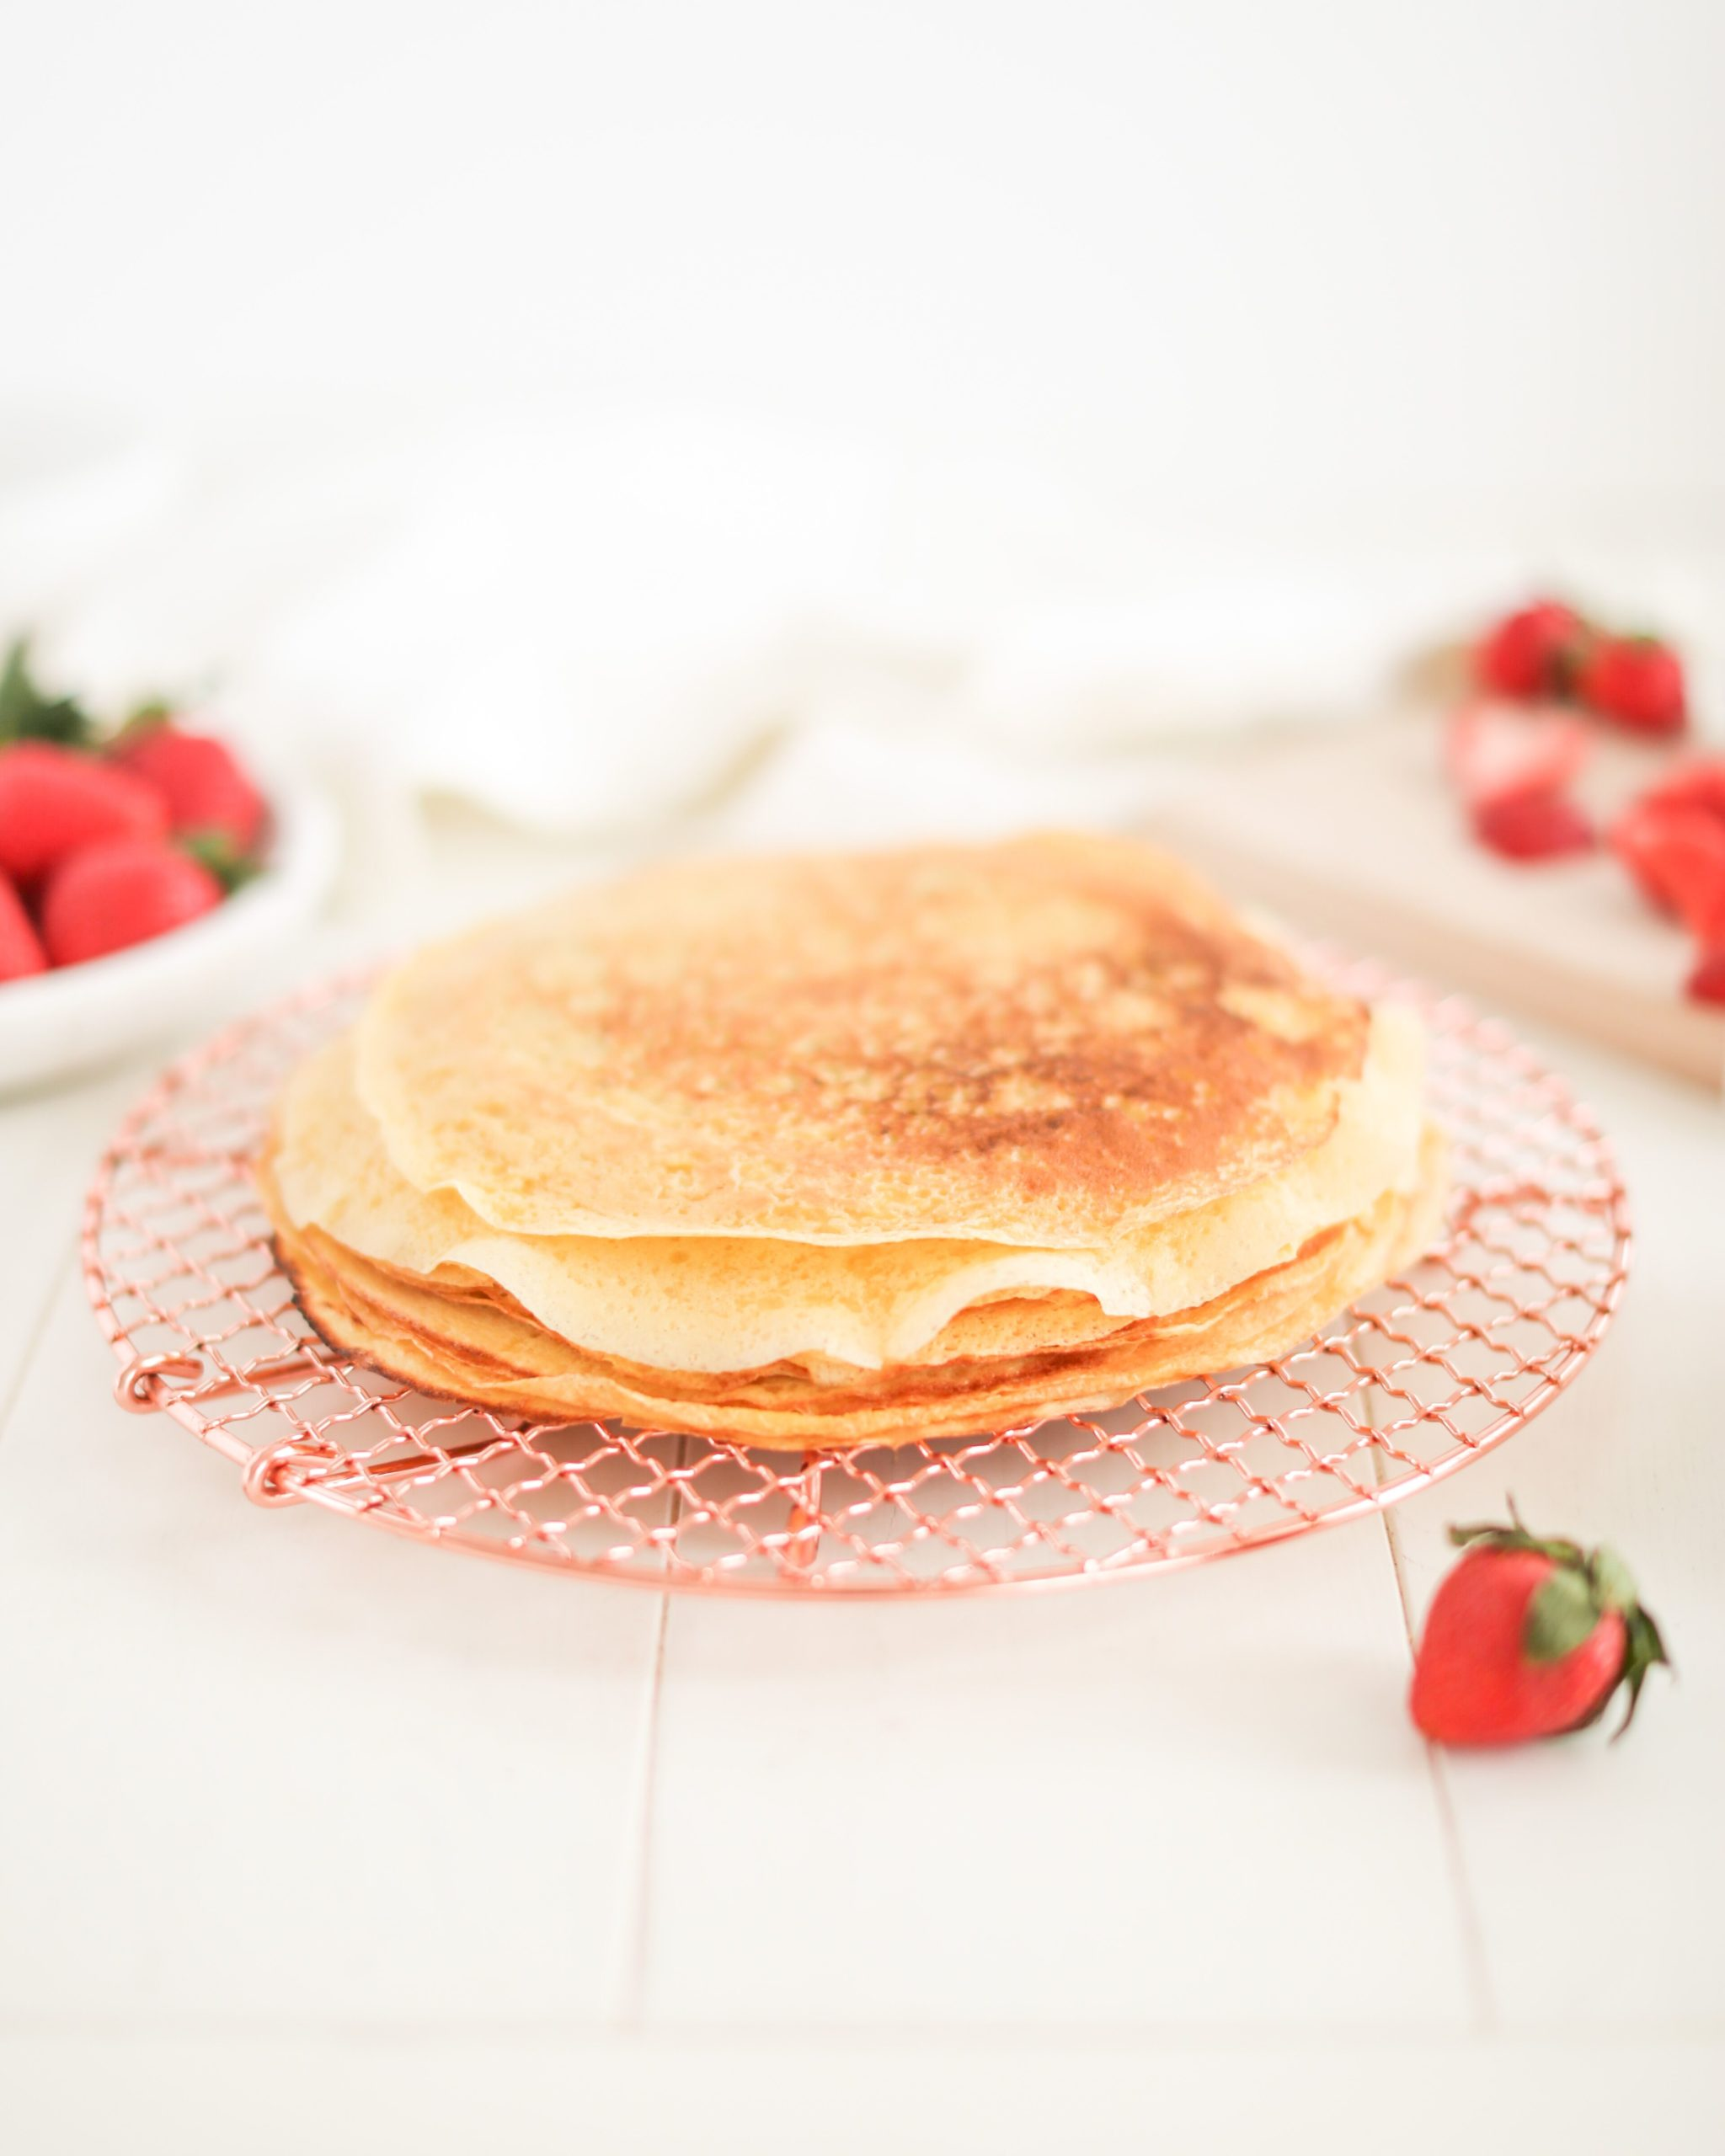 How to make the perfect crepe